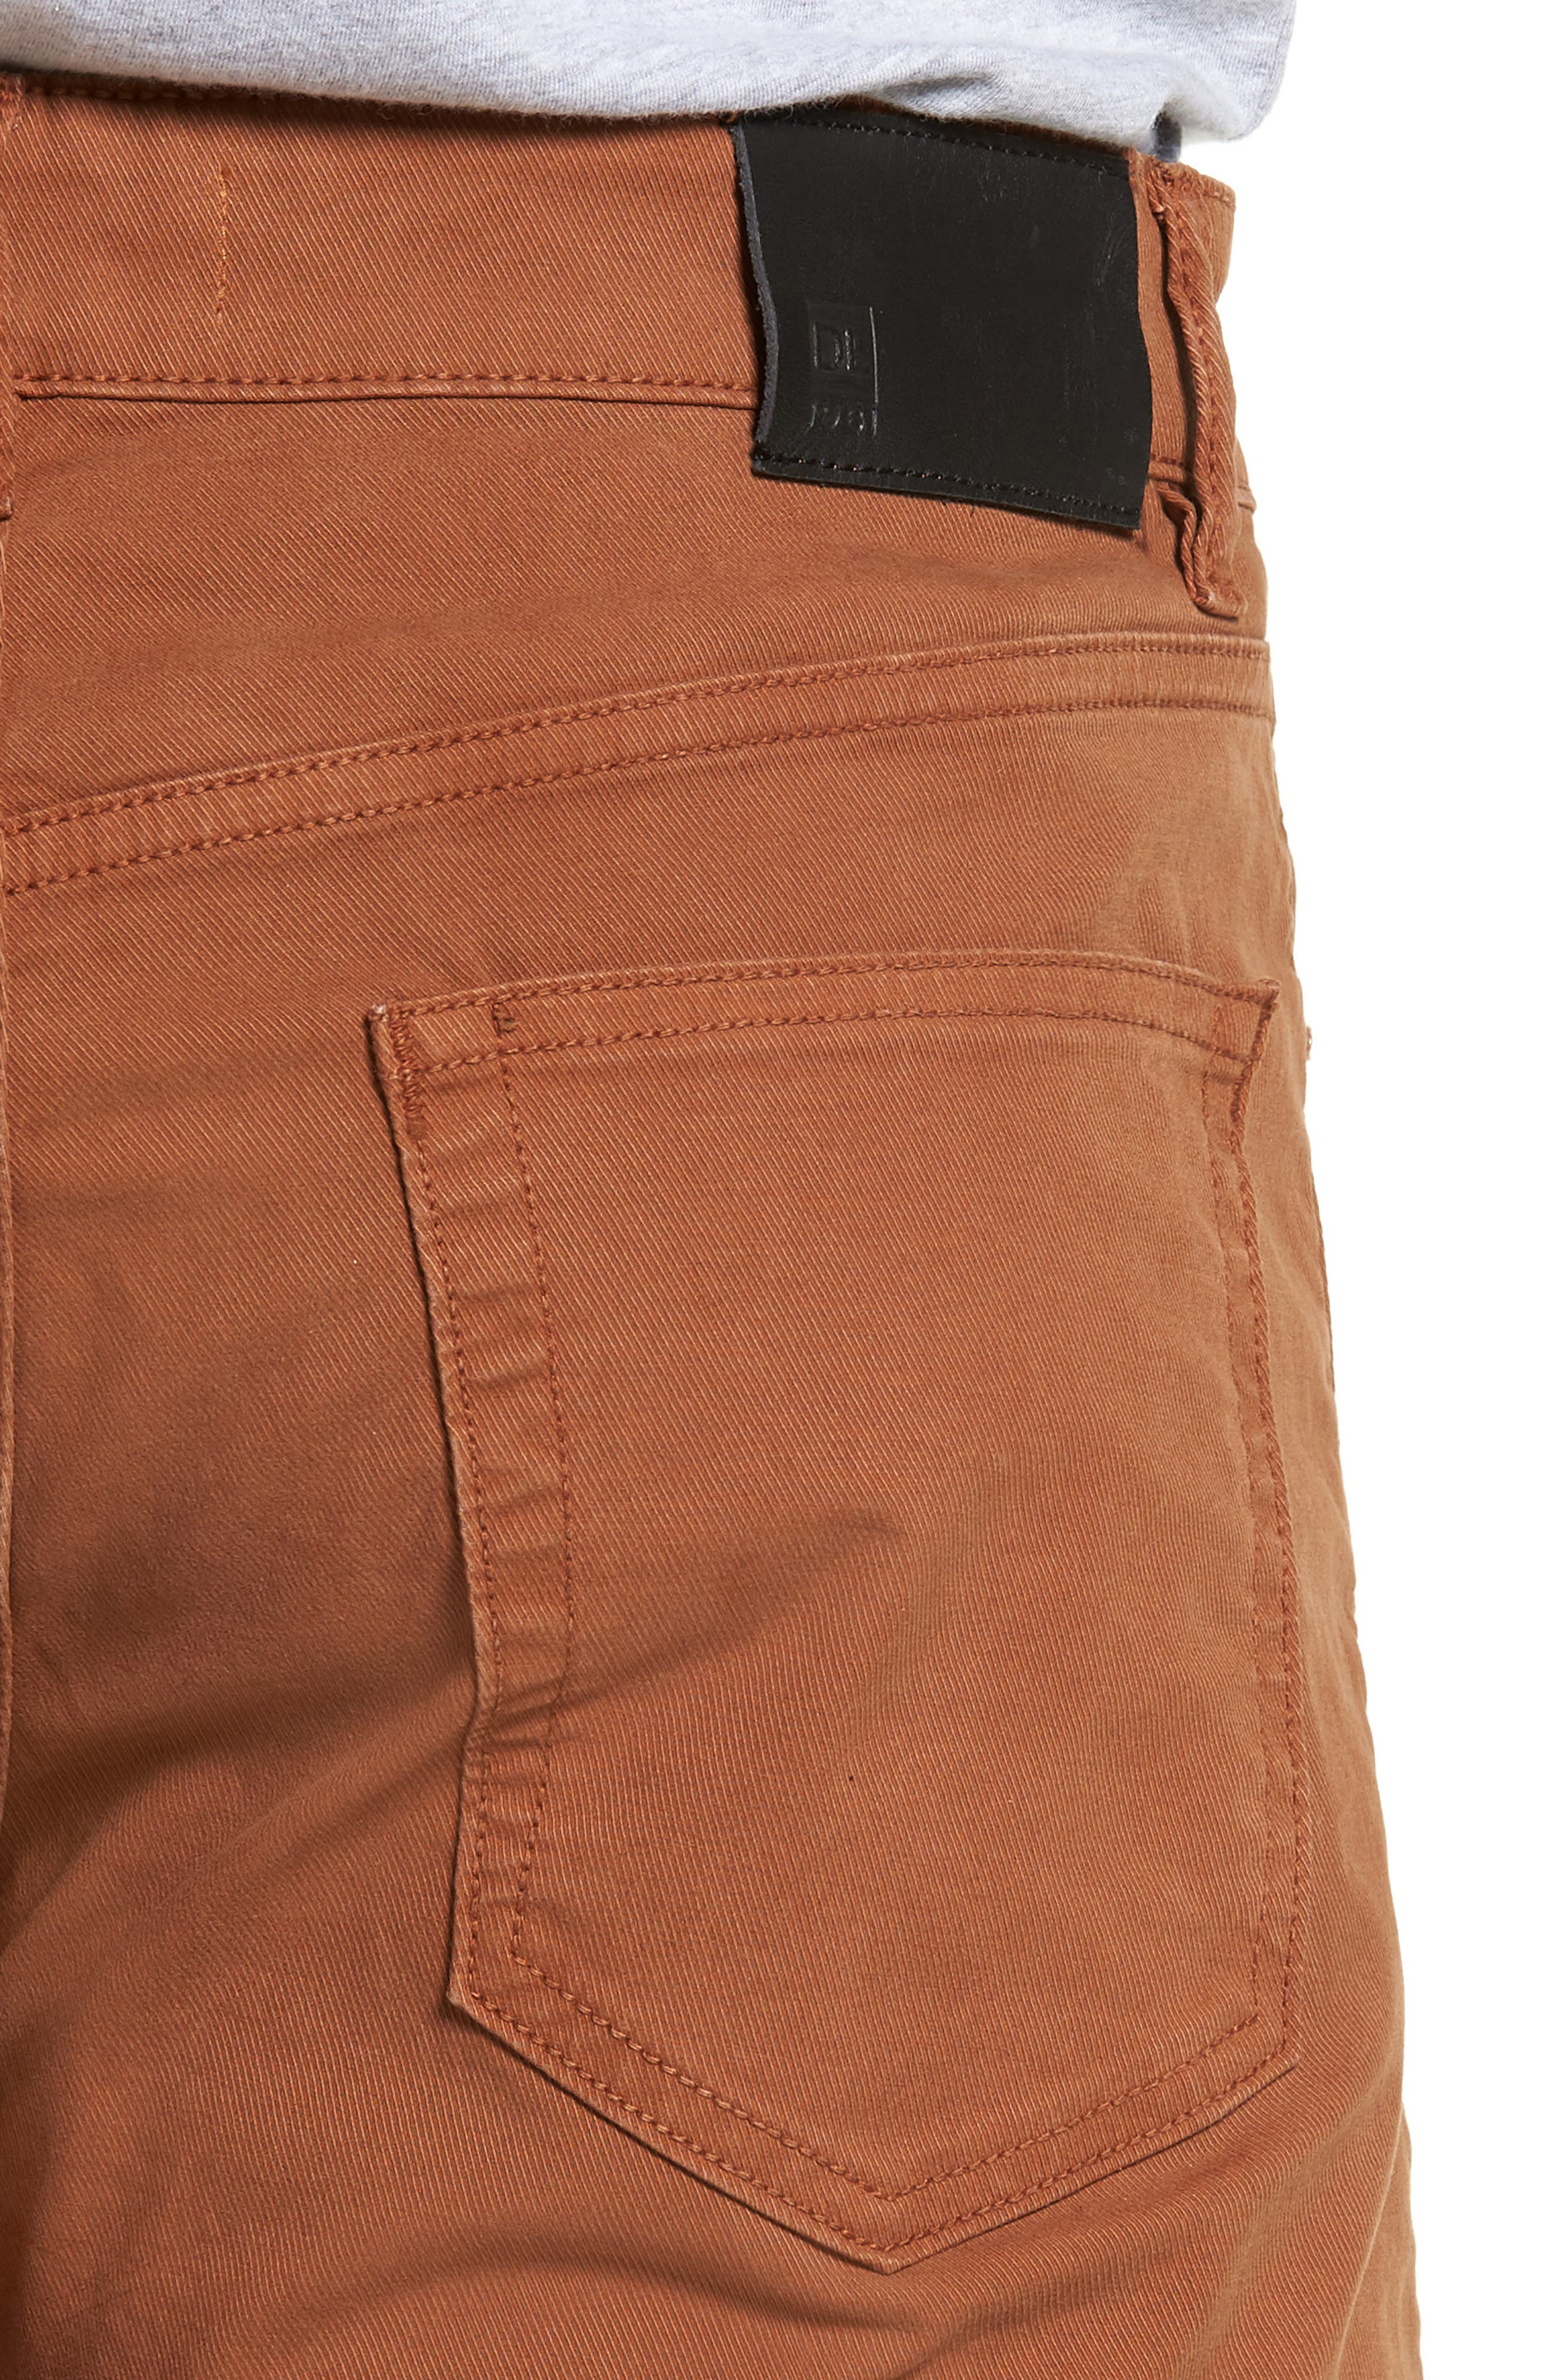 Russell Slim Straight Leg Jeans,                             Alternate thumbnail 4, color,                             TERRACOTTA